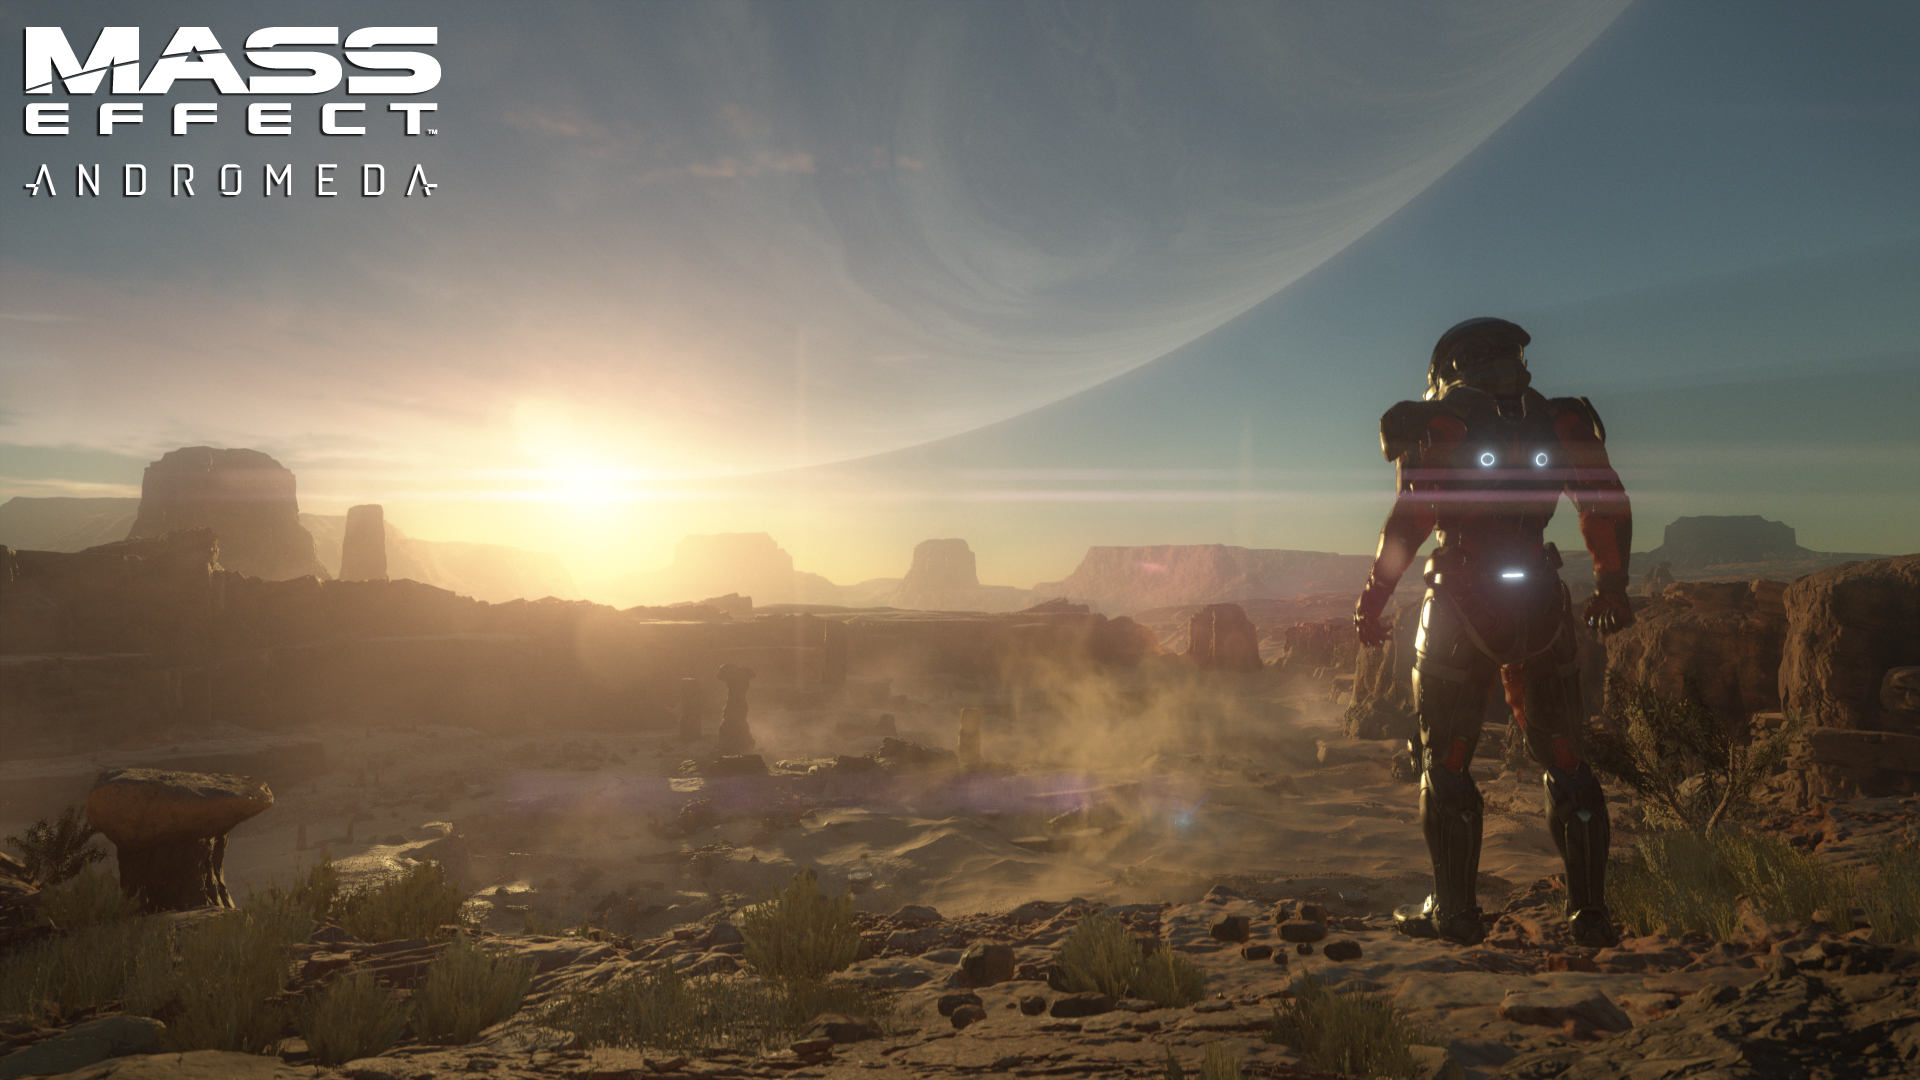 Andromeda, Halo 4 writer joins Bungie